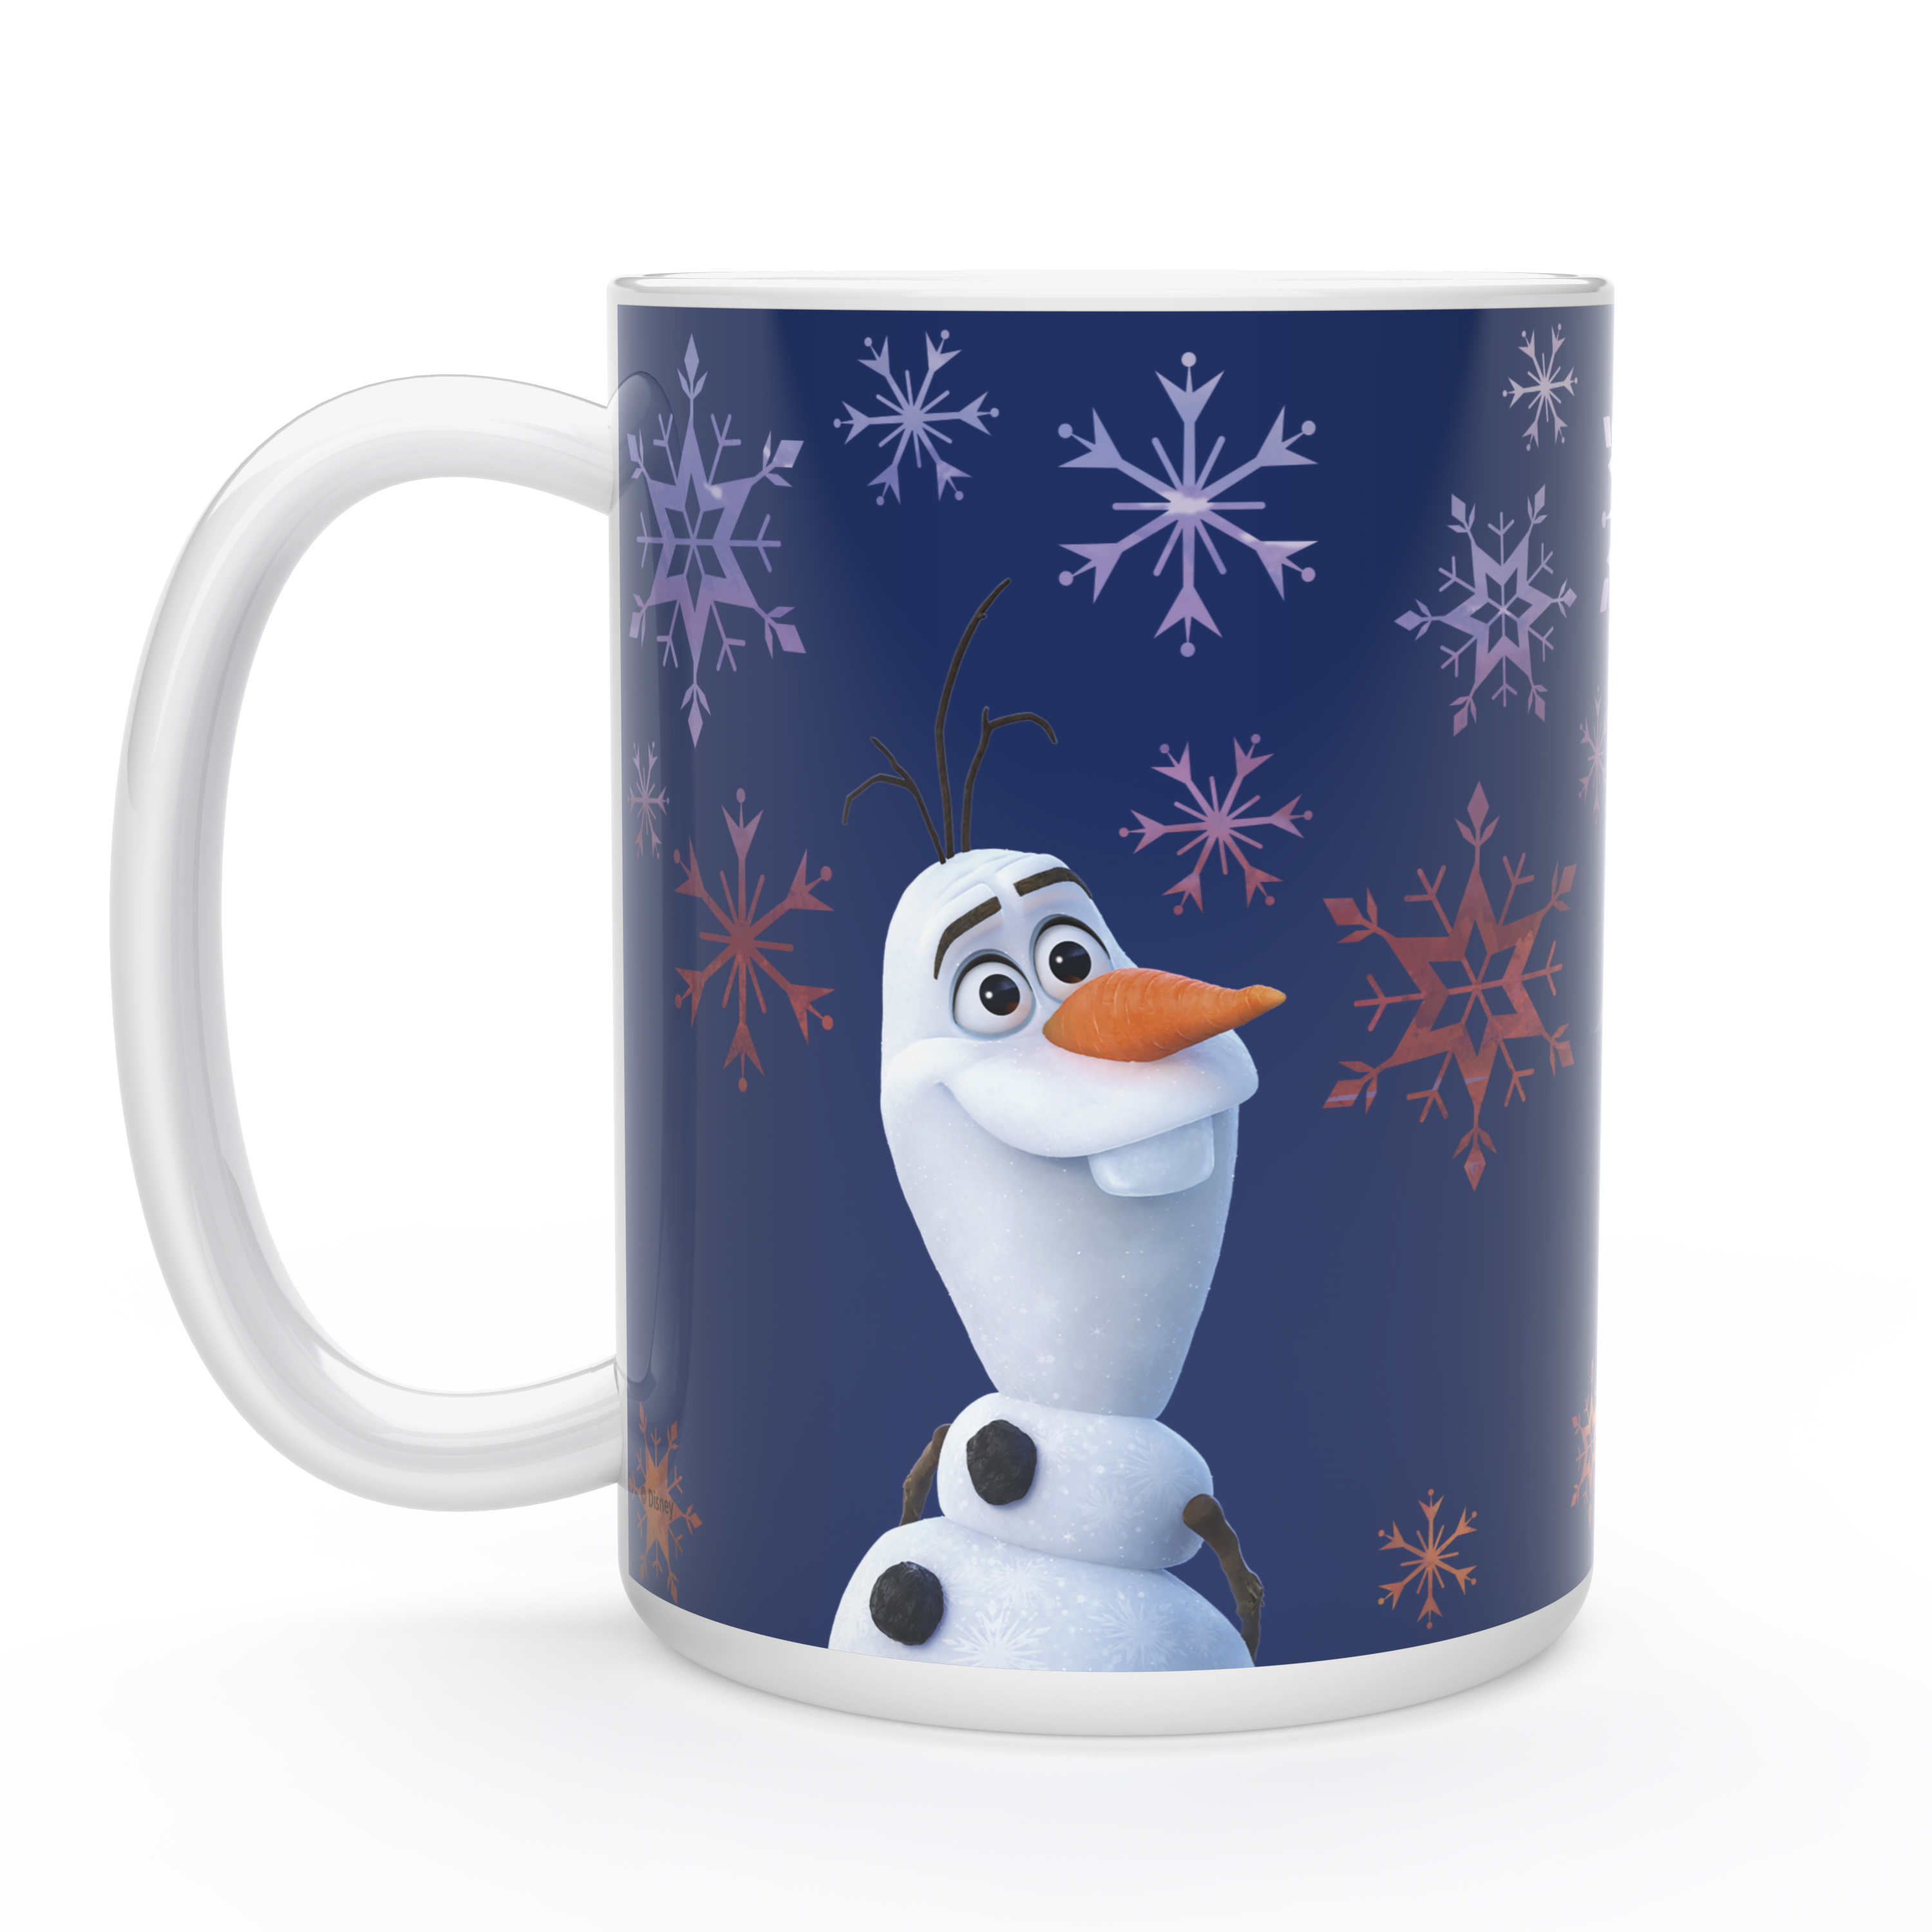 Disney Frozen 2 Movie 15 ounce Coffee Mug and Spoon, Anna, Elsa & Olaf slideshow image 7